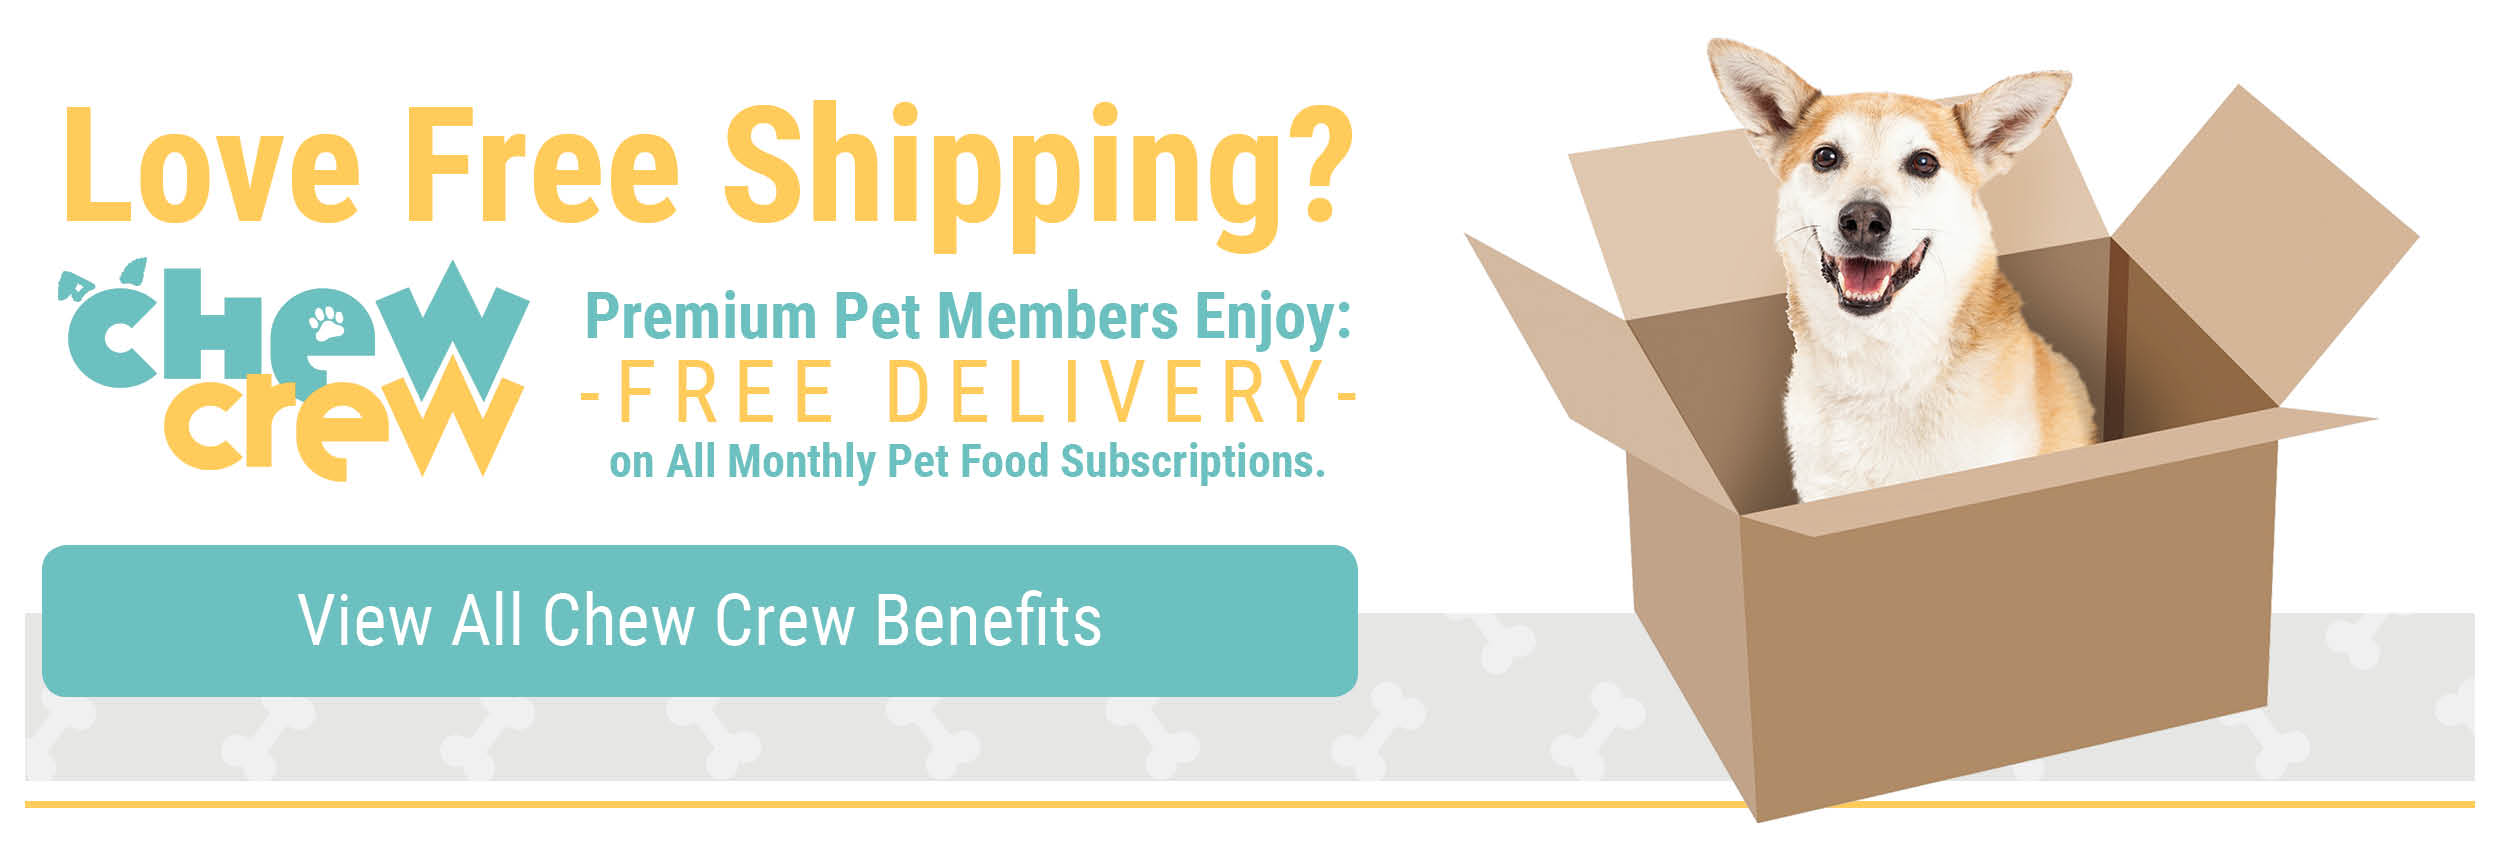 Chew Crew Members Receive Free Shipping on Monthly Pet Food Subscriptions